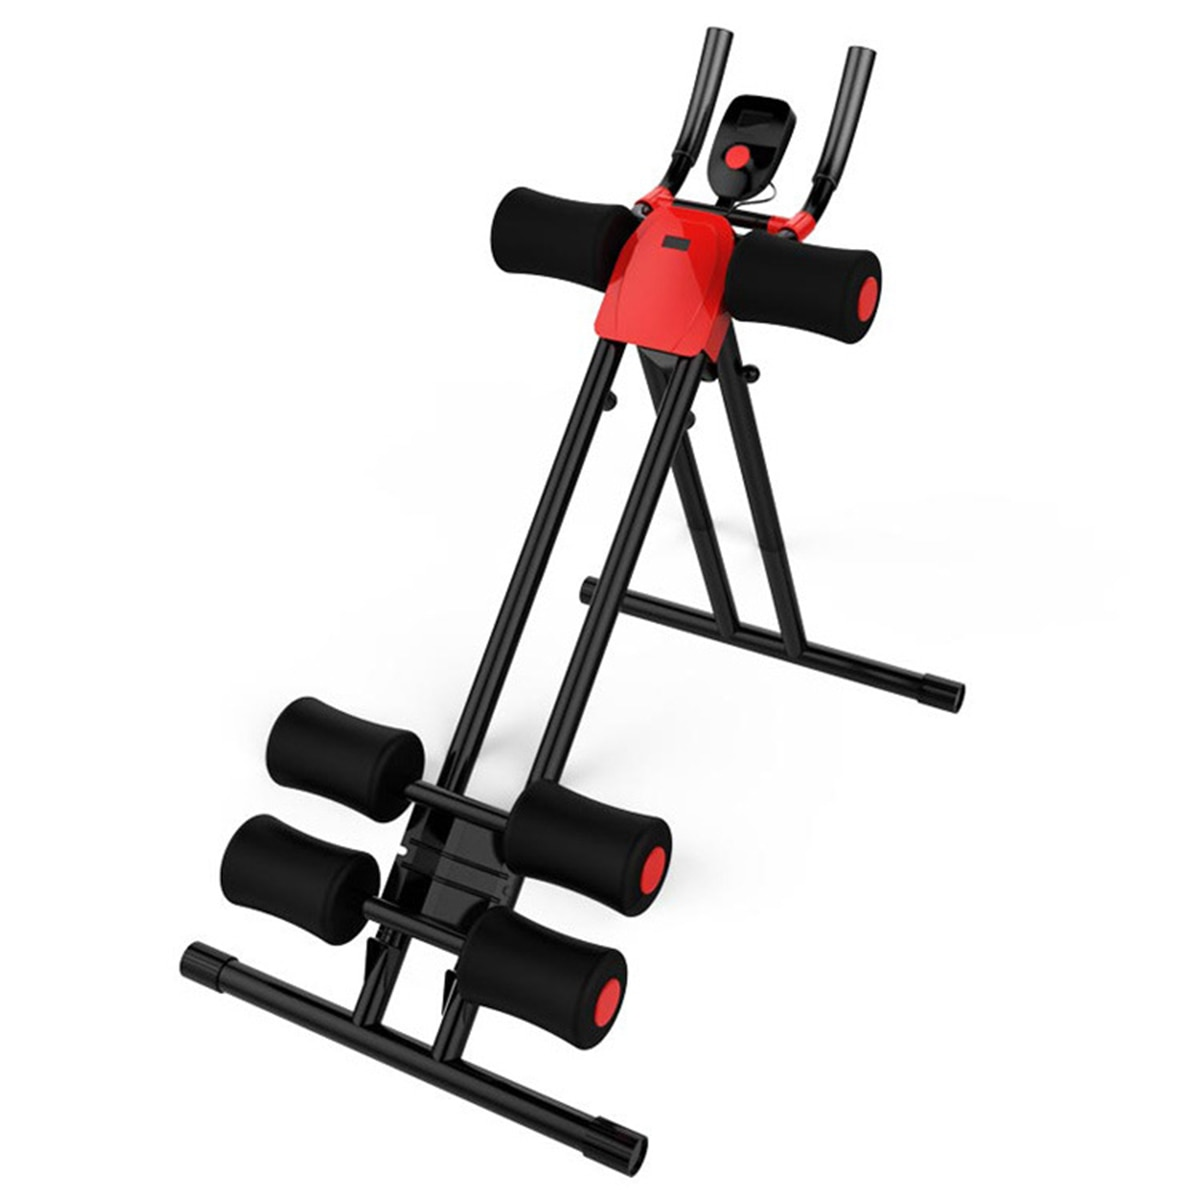 AB Gliders Trainer Rail Cruncher Abdominal Roller LED Smart Device Lose Weight Machine Home Gym ABS